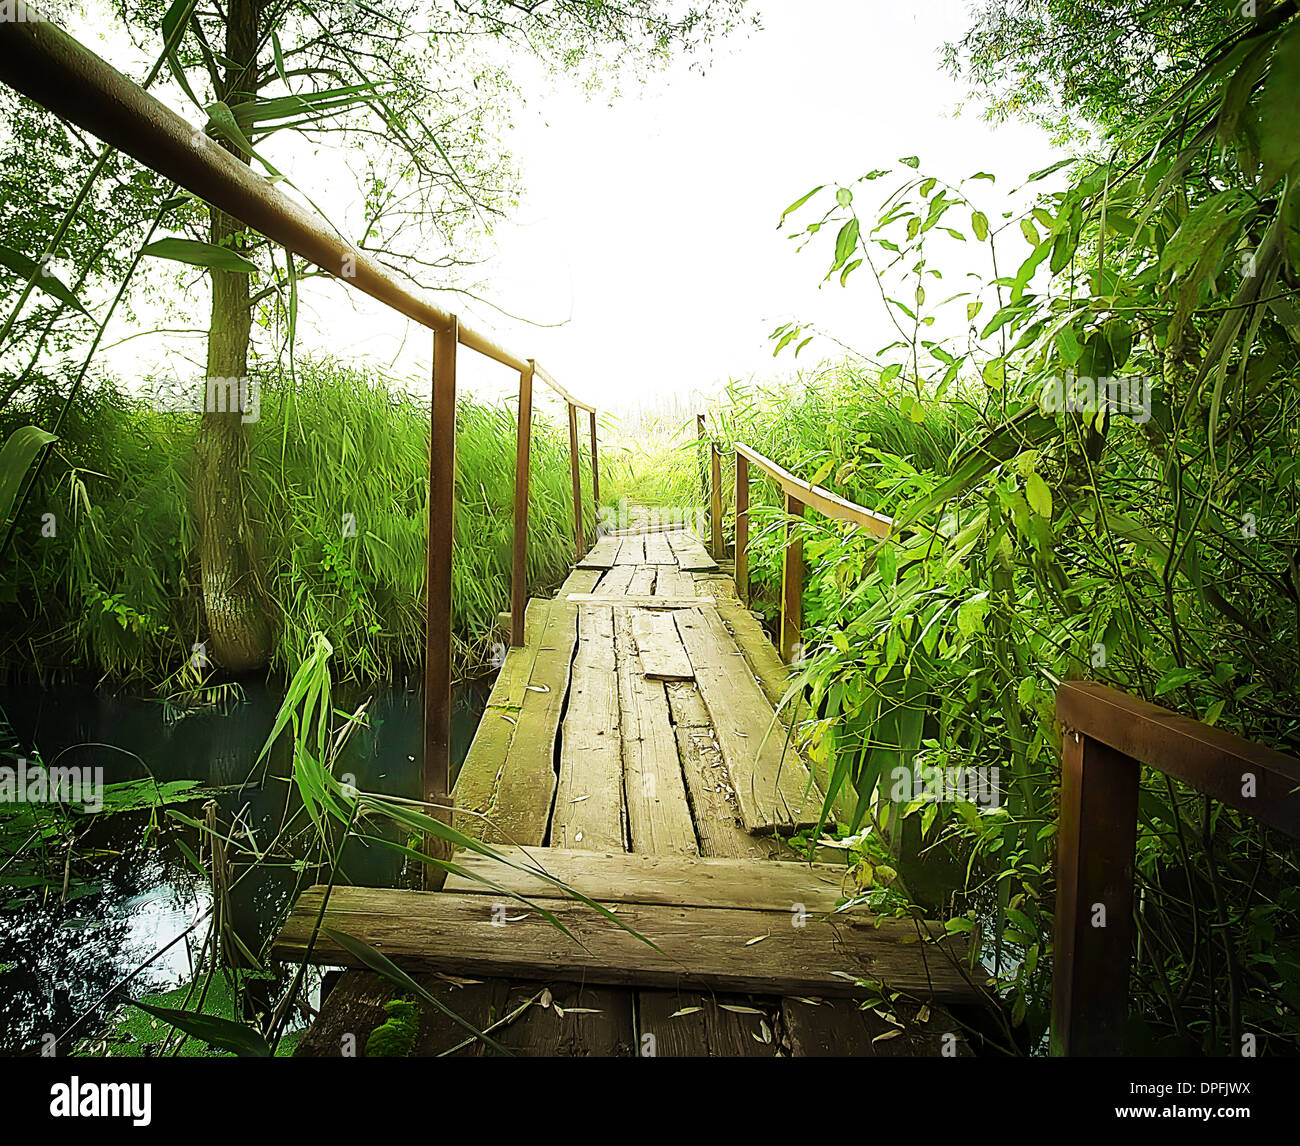 Small Bridges: Old Wooden Bridge Over A Small River Stock Photo: 65497654